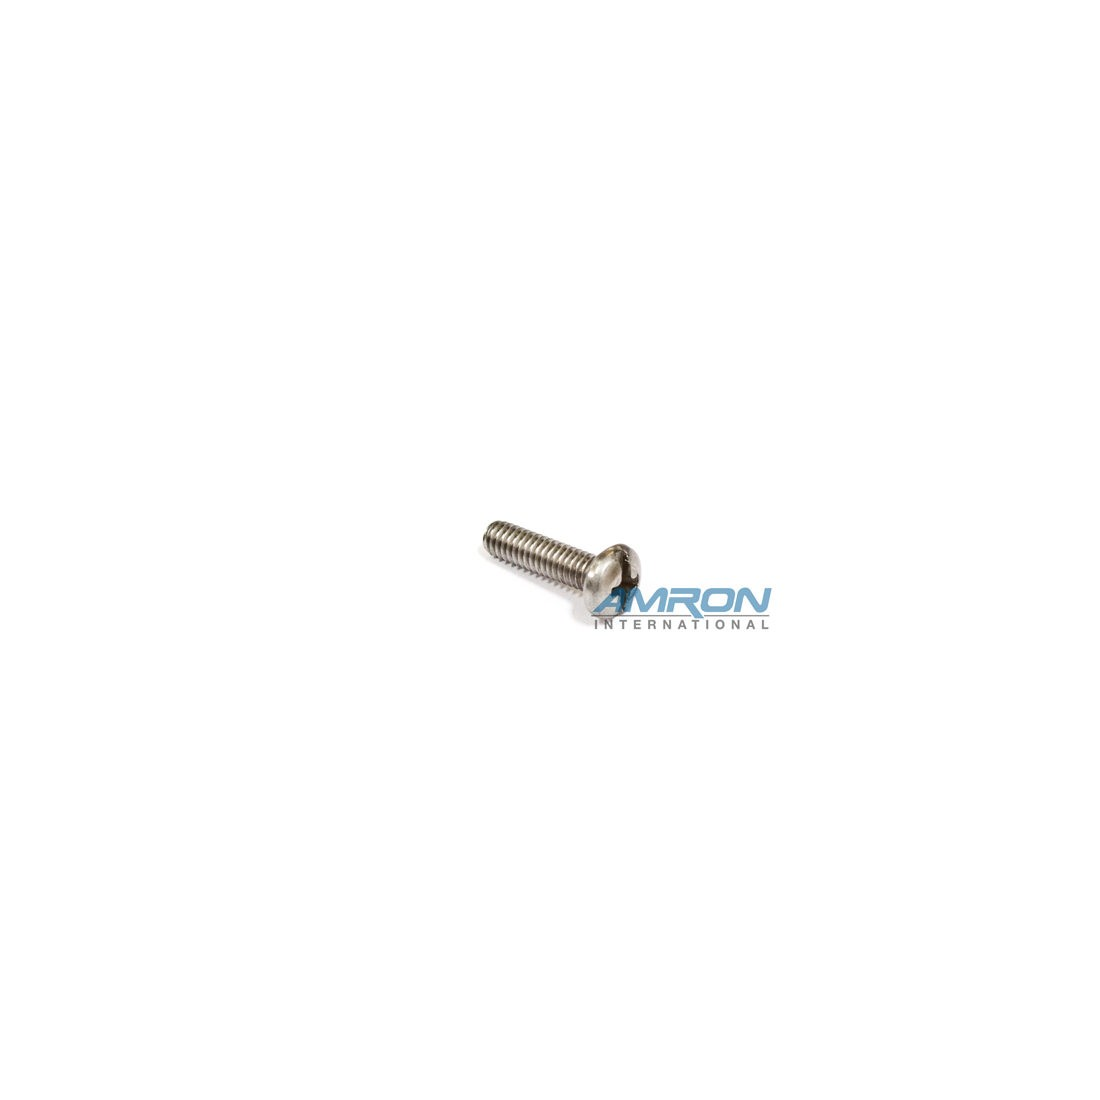 Kirby Morgan 530-040 Screw